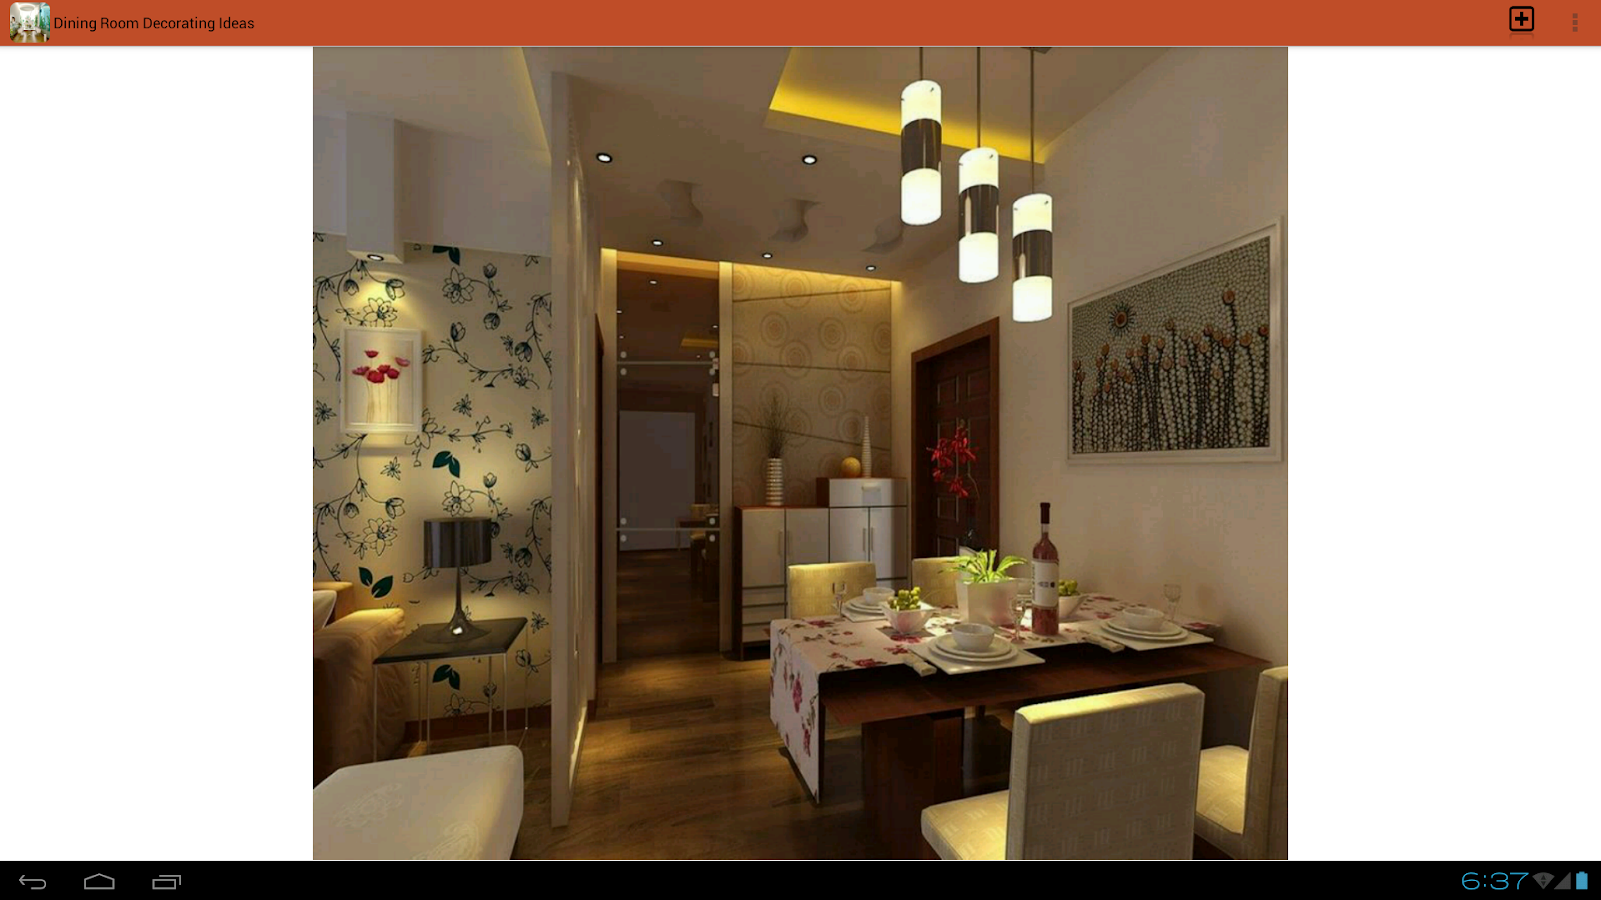 Dining room decorating ideas android apps on google play Room makeover app